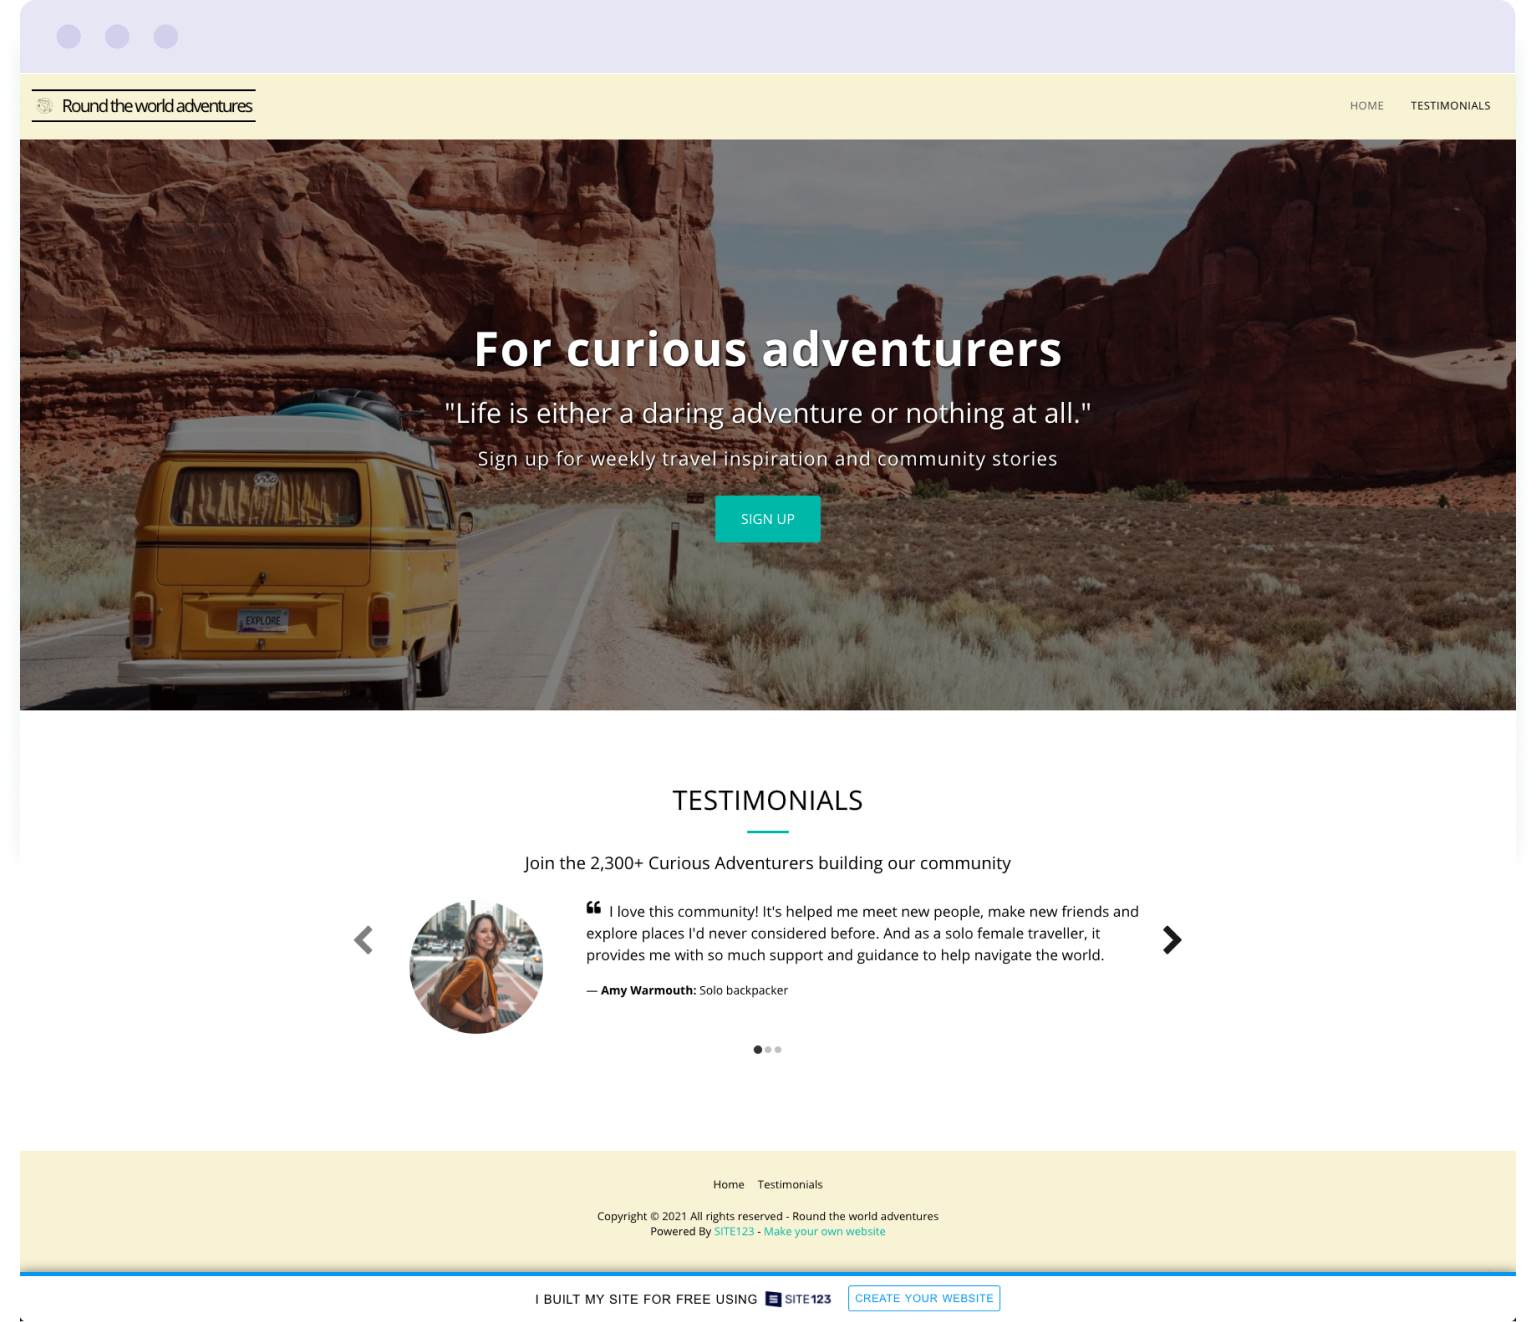 Example of a free landing page built with Site123